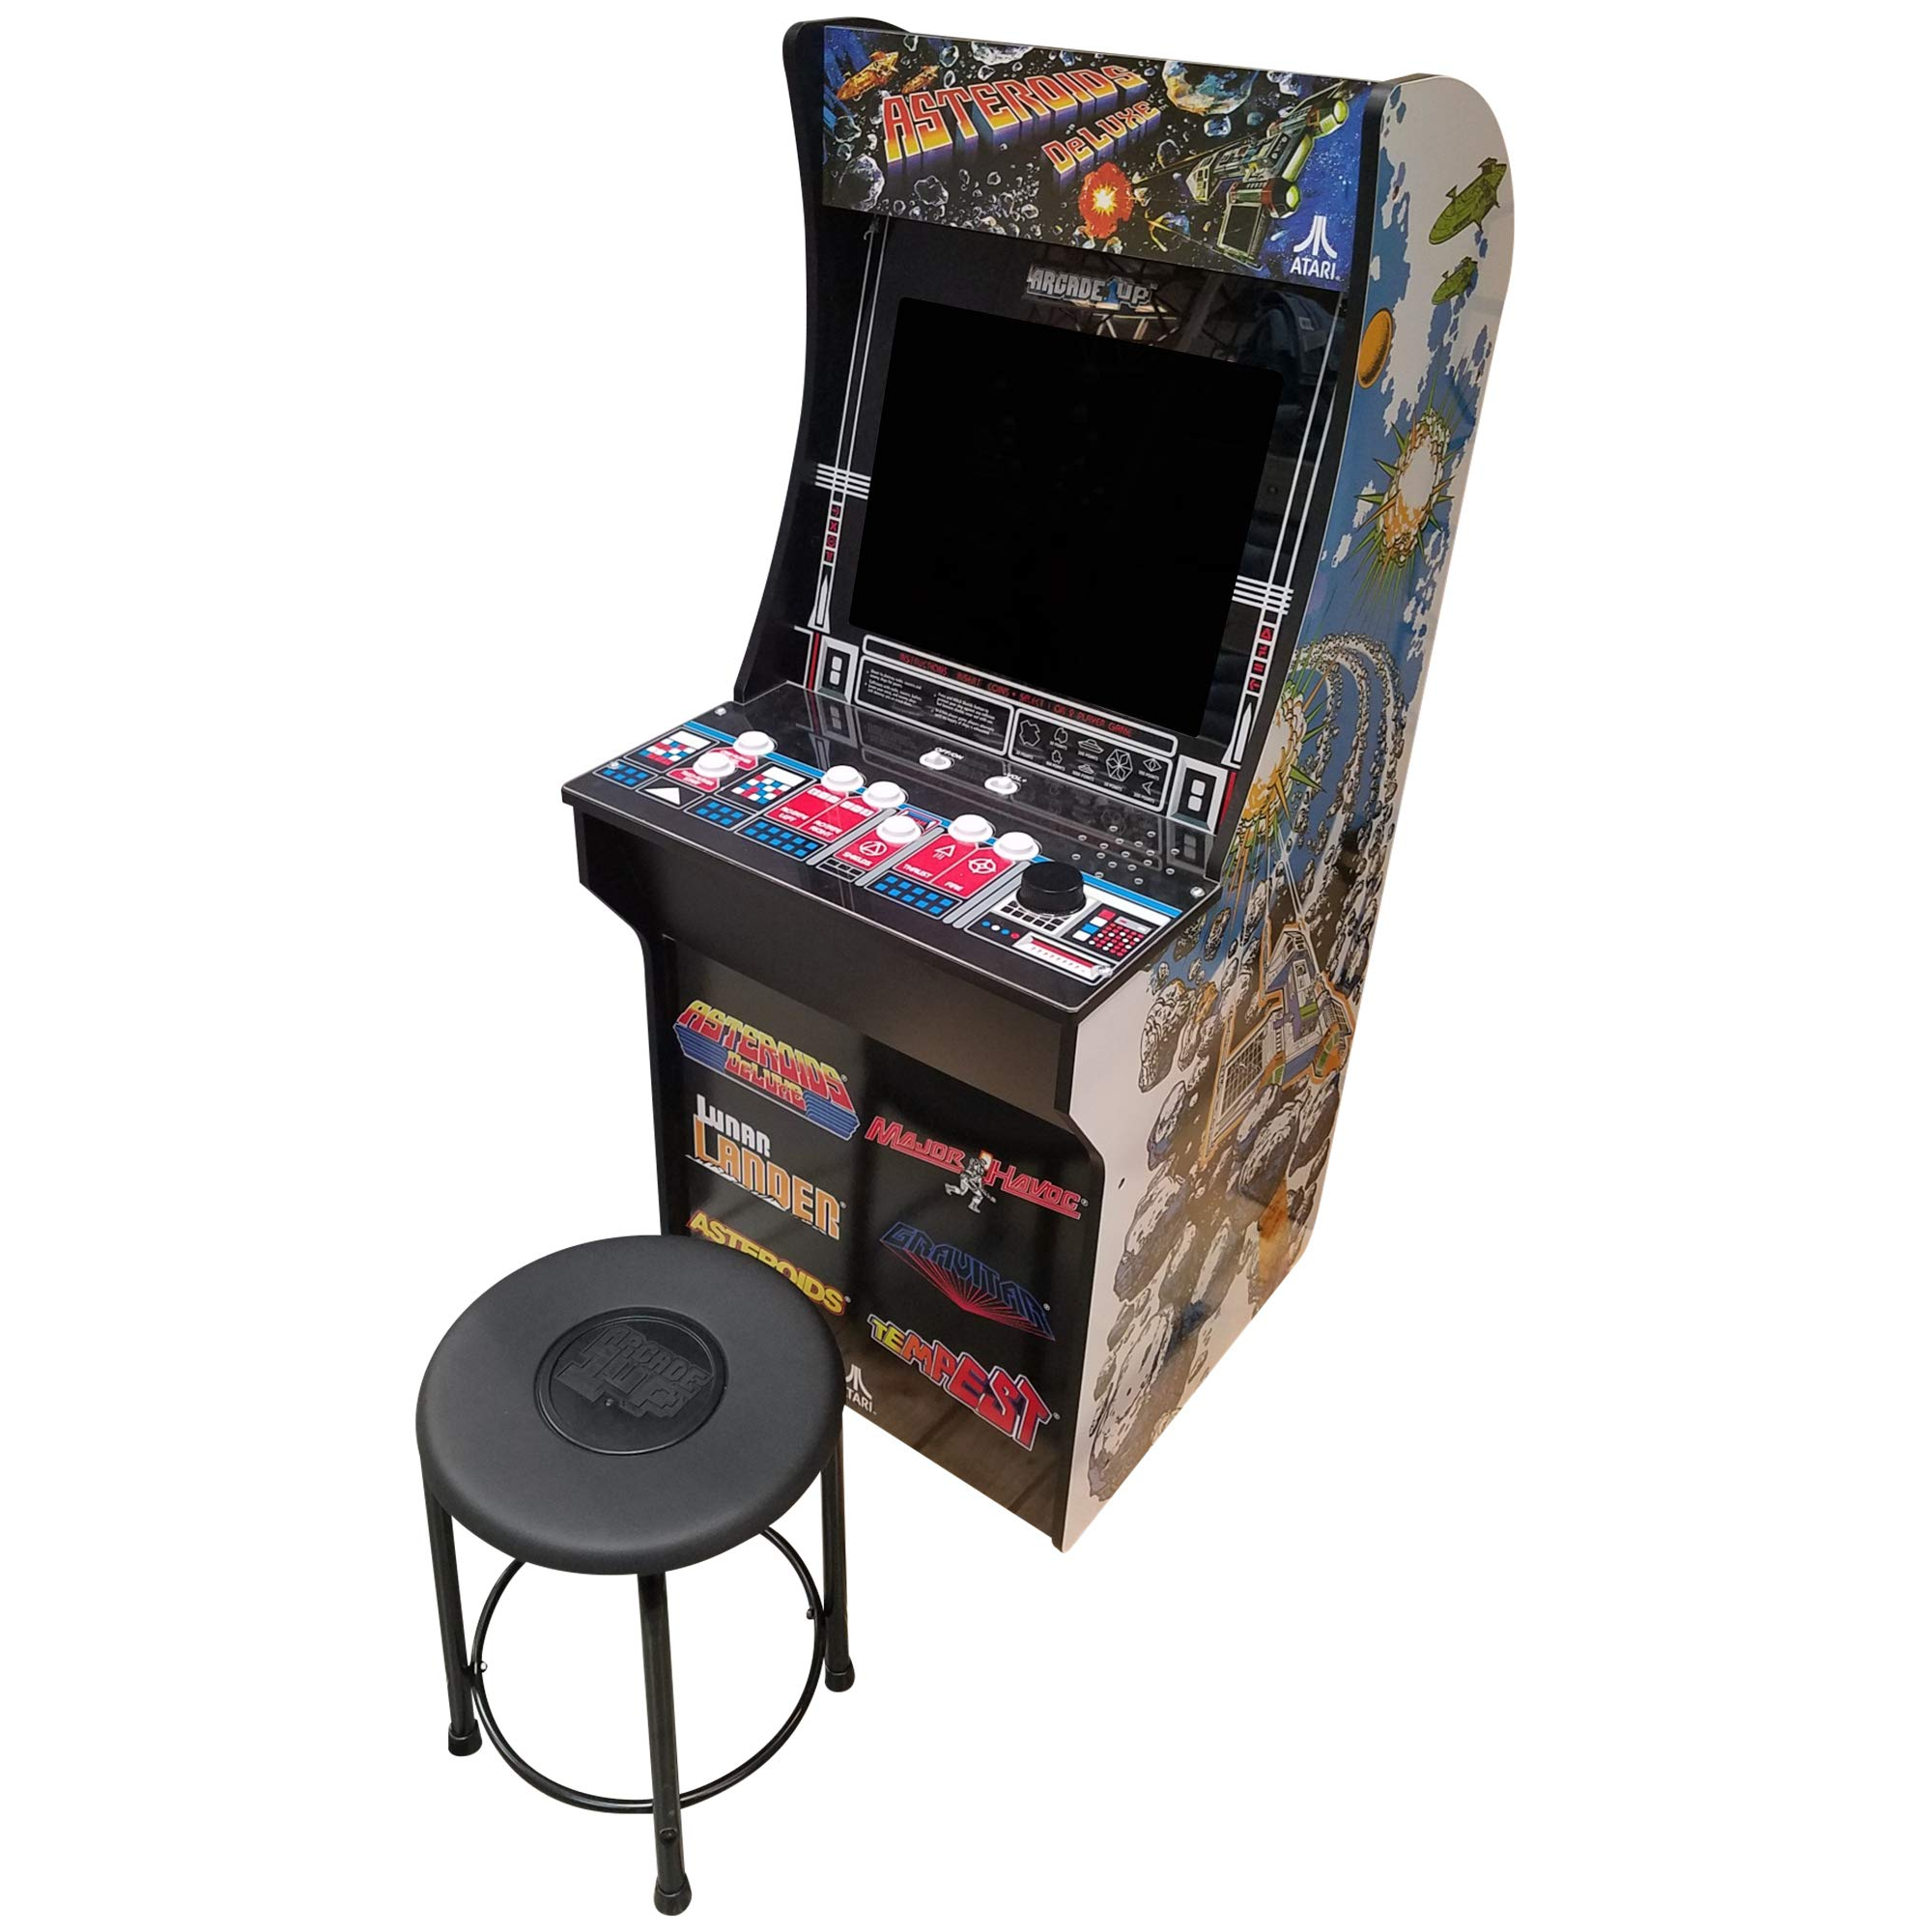 Creative Arcades 6 in 1 Atari Cabinet Arcade 1Up Machine for Home | 6 Classic Games Pre-Installed | Plug and Play - Fully Assembled | 1 - 2 Player | Stool Included | 17'' Screen | Coinless Operation